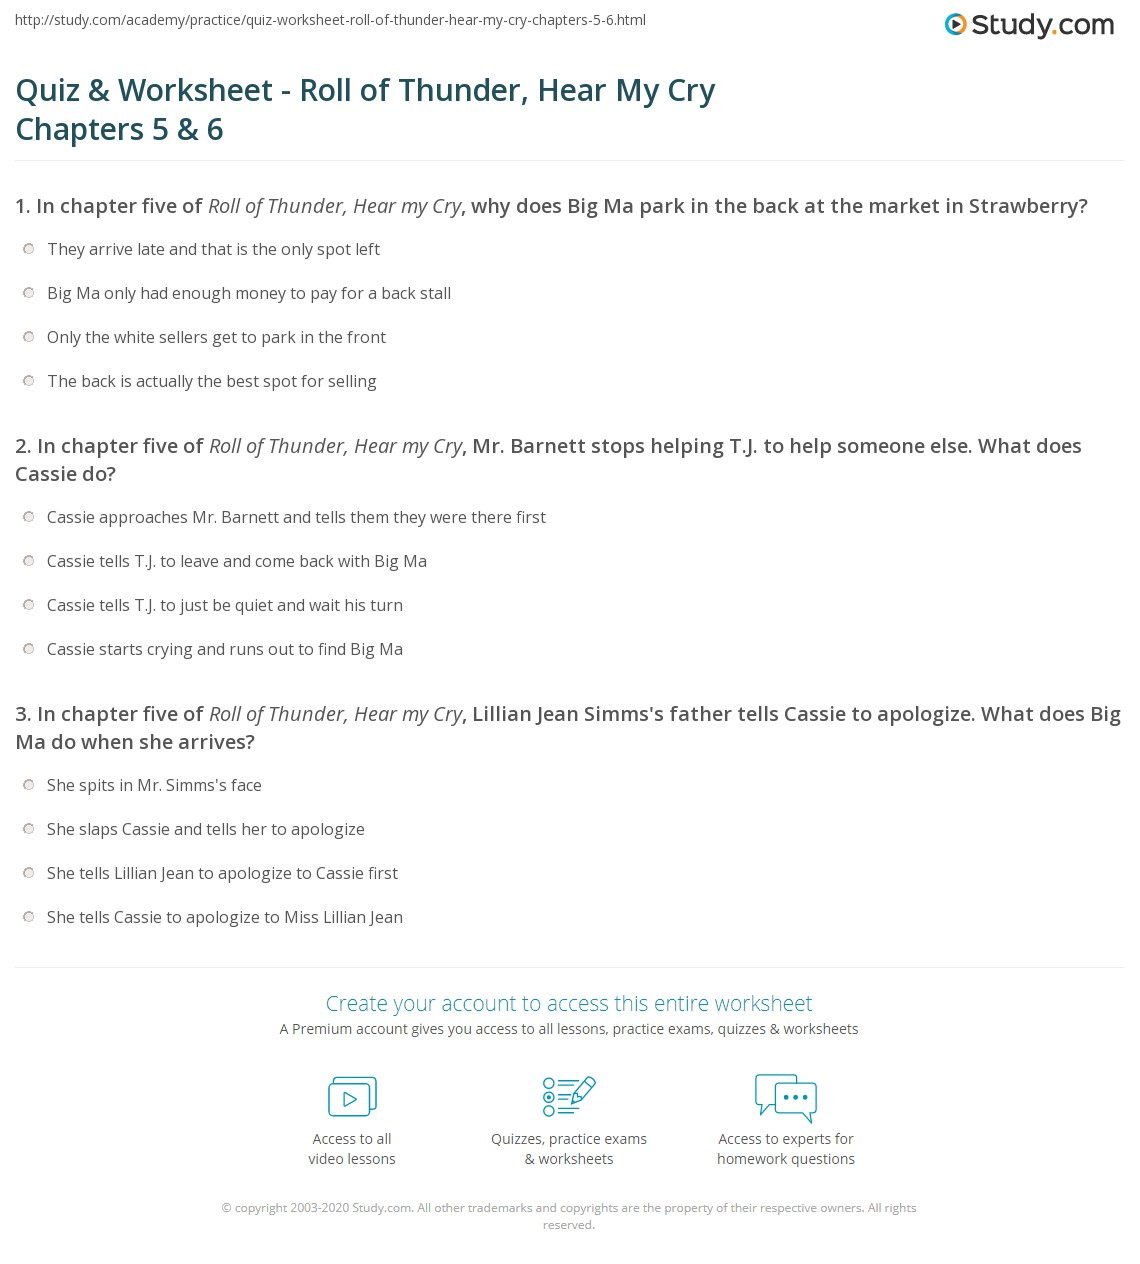 quiz worksheet roll of thunder hear my cry chapters 5 6. Black Bedroom Furniture Sets. Home Design Ideas